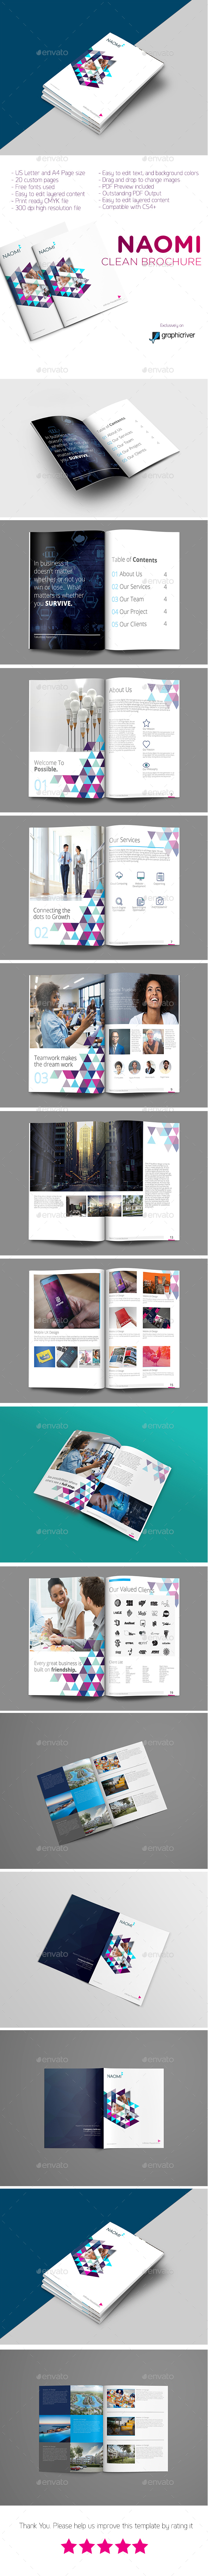 Naomi Clean Modern Corporate Brochure Template - Corporate Brochures